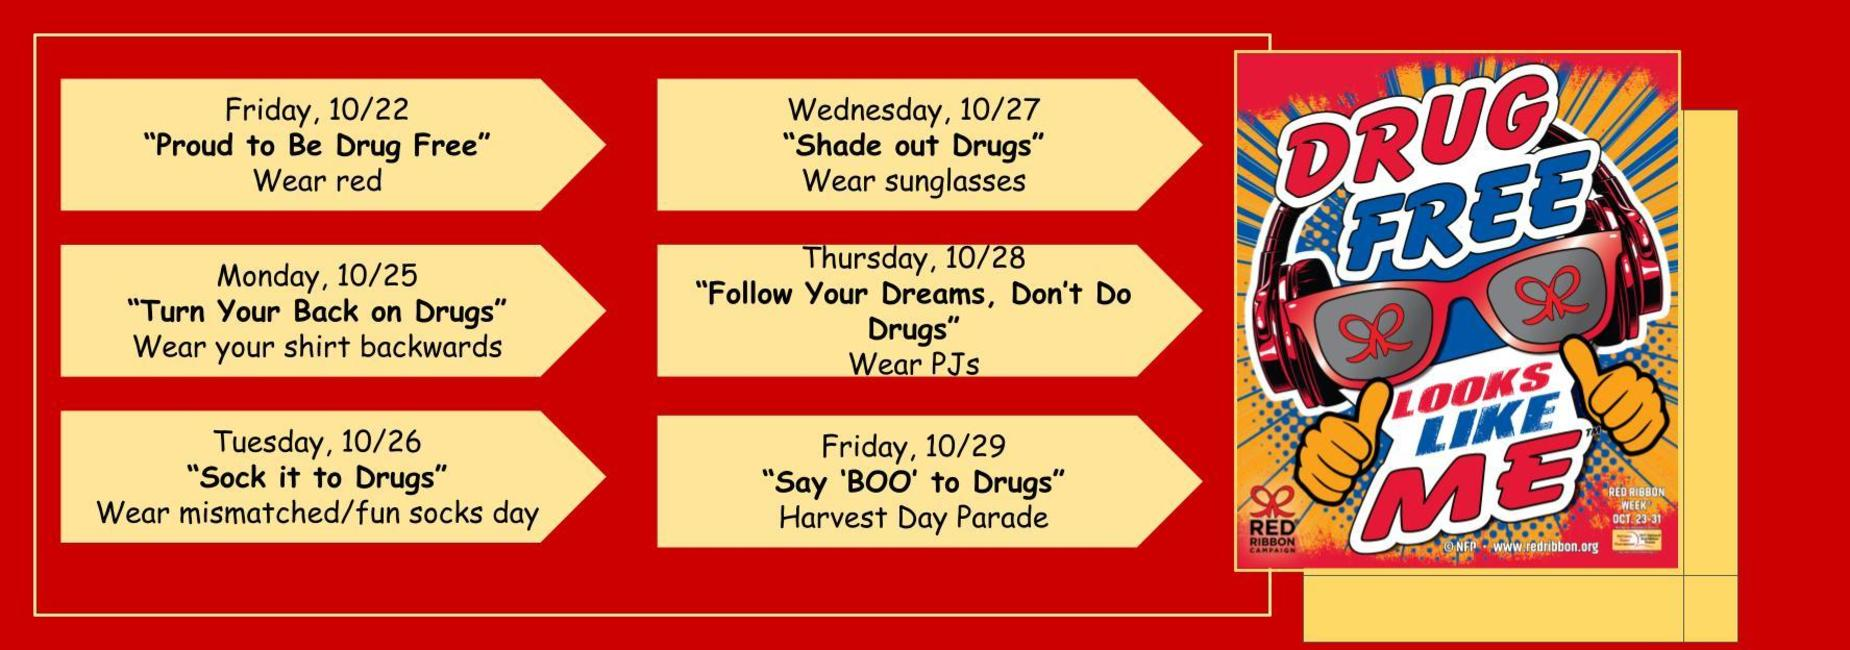 """Drug Free Looks like Me Banner Schedule.  1. Friday, October 22-""""Proud to Be Drug Free""""-Wear red to kick off Red Ribbon Week  2. Monday, October 25-""""Turn Your Back on Drugs""""-Wear your shirt backwards day  3. Tuesday, October 26-""""Sock it to Drugs""""-Wear mismatched or fun socks day  4. Wednesday, October 27-""""Shade out Drugs""""-Wear your favorite pair of sunglasses  5. Thursday, October 28-""""Follow Your Dreams, Don't Do Drugs""""-Wear your favorite PJs to school day  6. Friday, October 29-""""Say 'BOO' to drugs""""-Harvest Day Parade"""